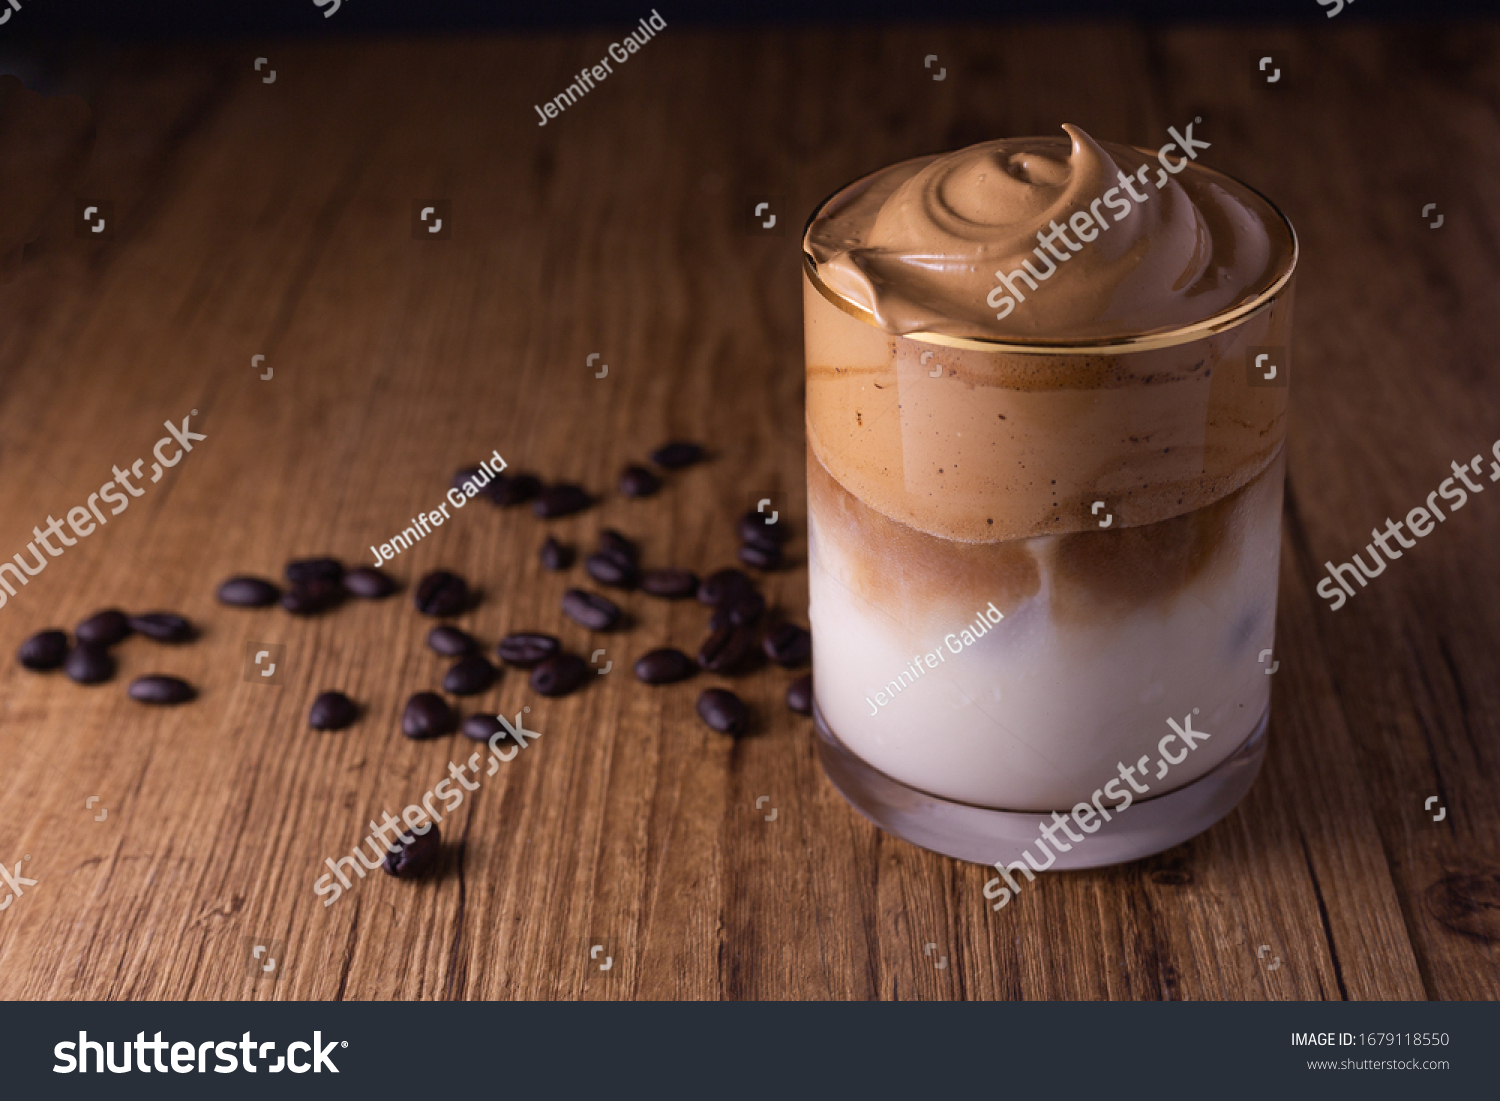 Iced Dalgona Coffee, a trendy fluffy creamy whipped coffee #1679118550